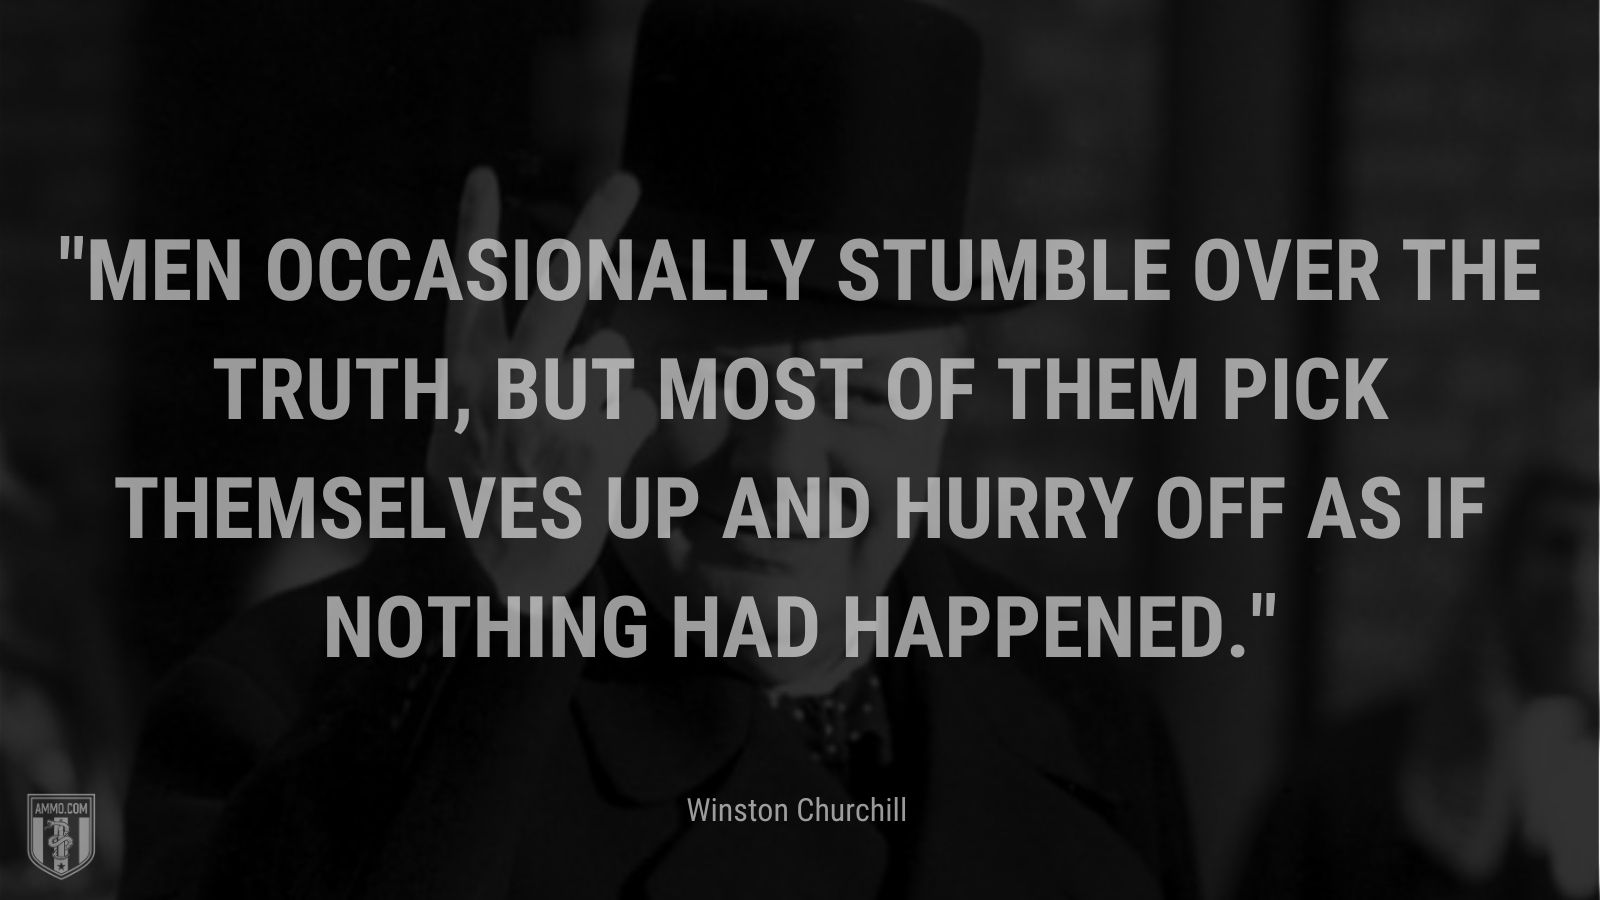 Men occasionally stumble over the truth, but most of them pick themselves up and hurry off as if nothing had happened.